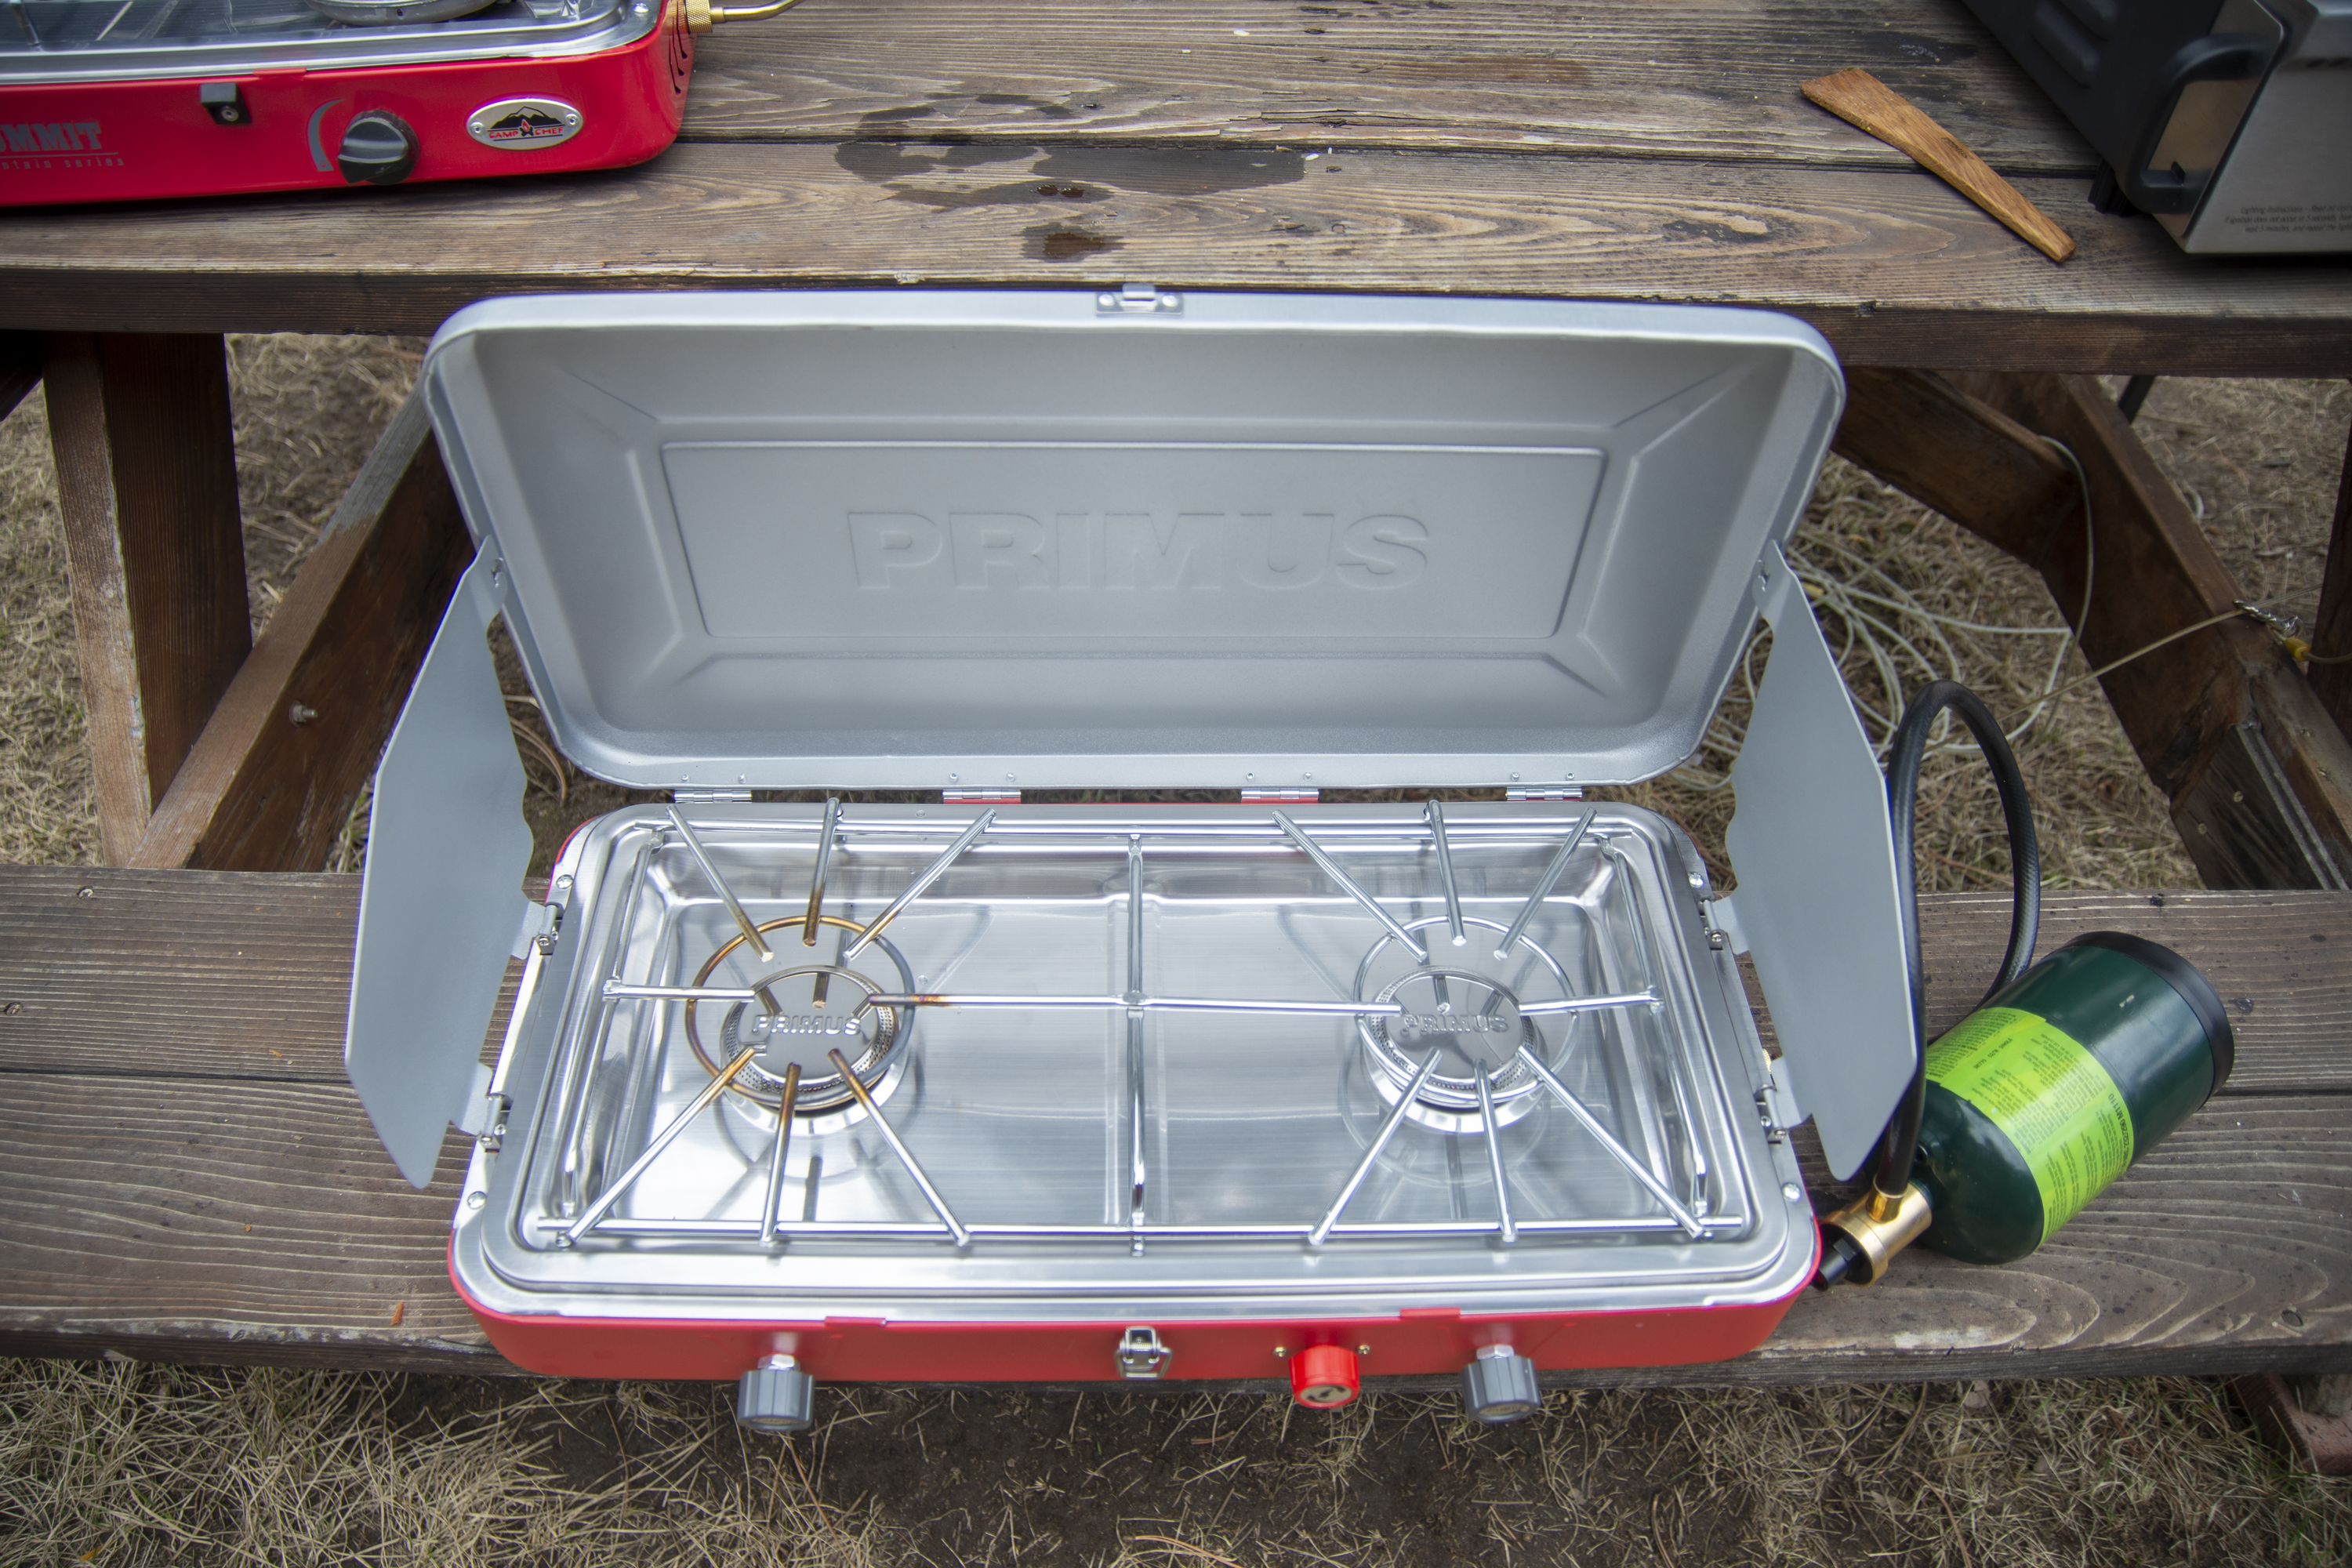 best camping stove: Primus profile review